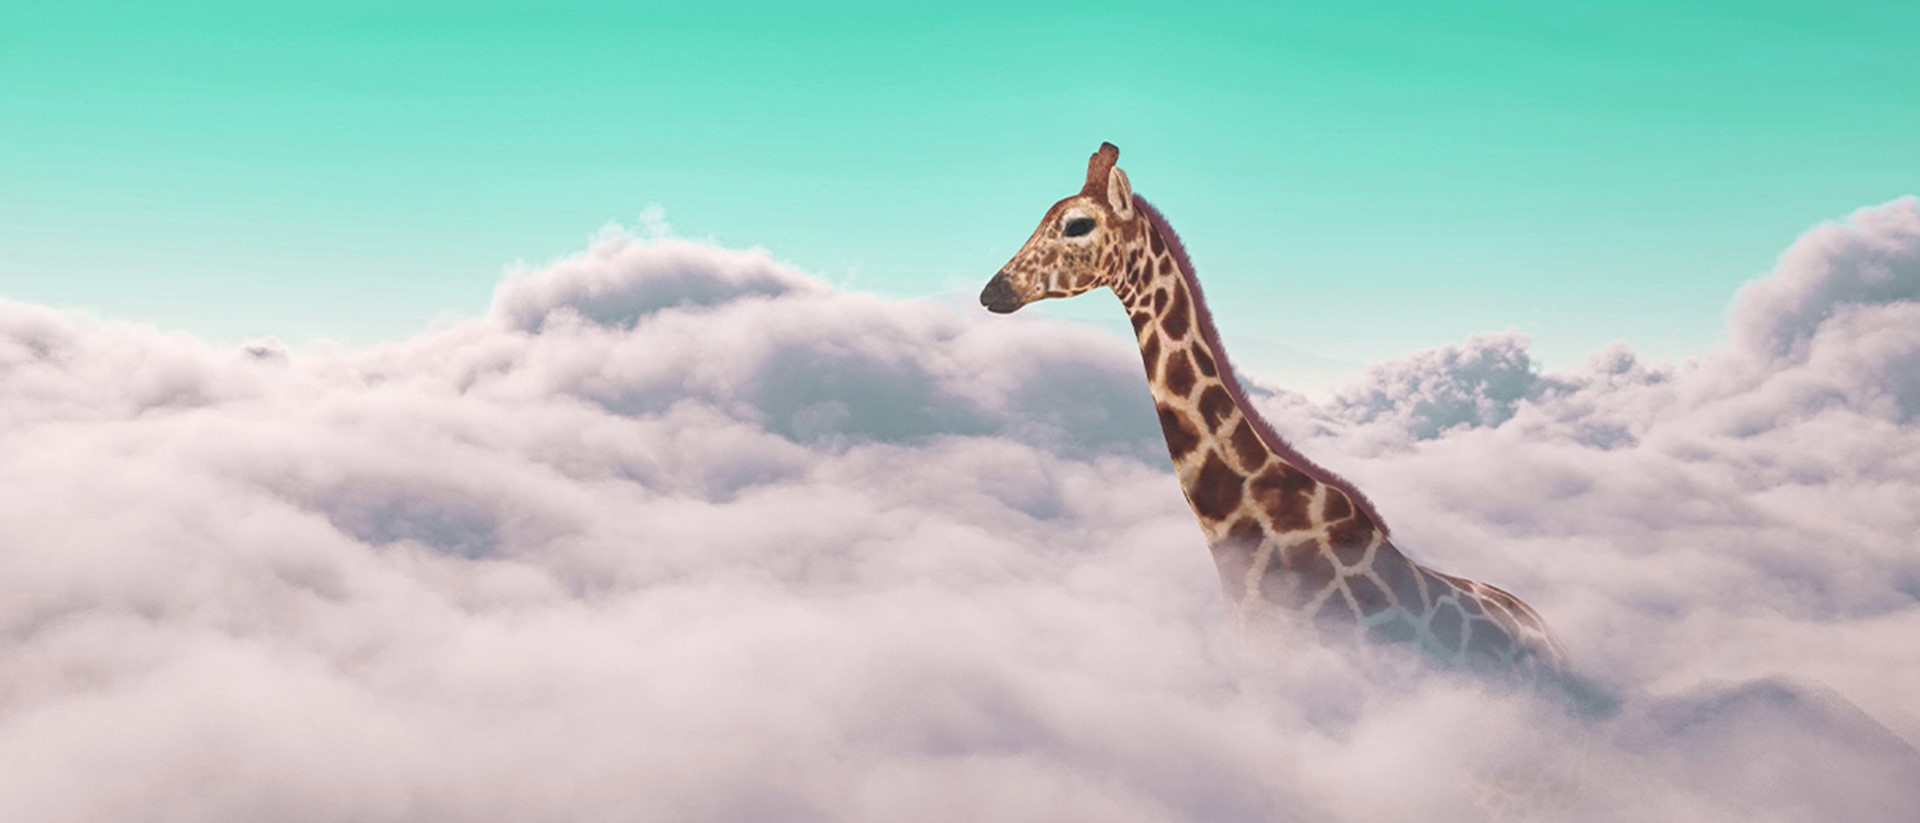 Image of a giraffe poking up through clouds with a teal sky